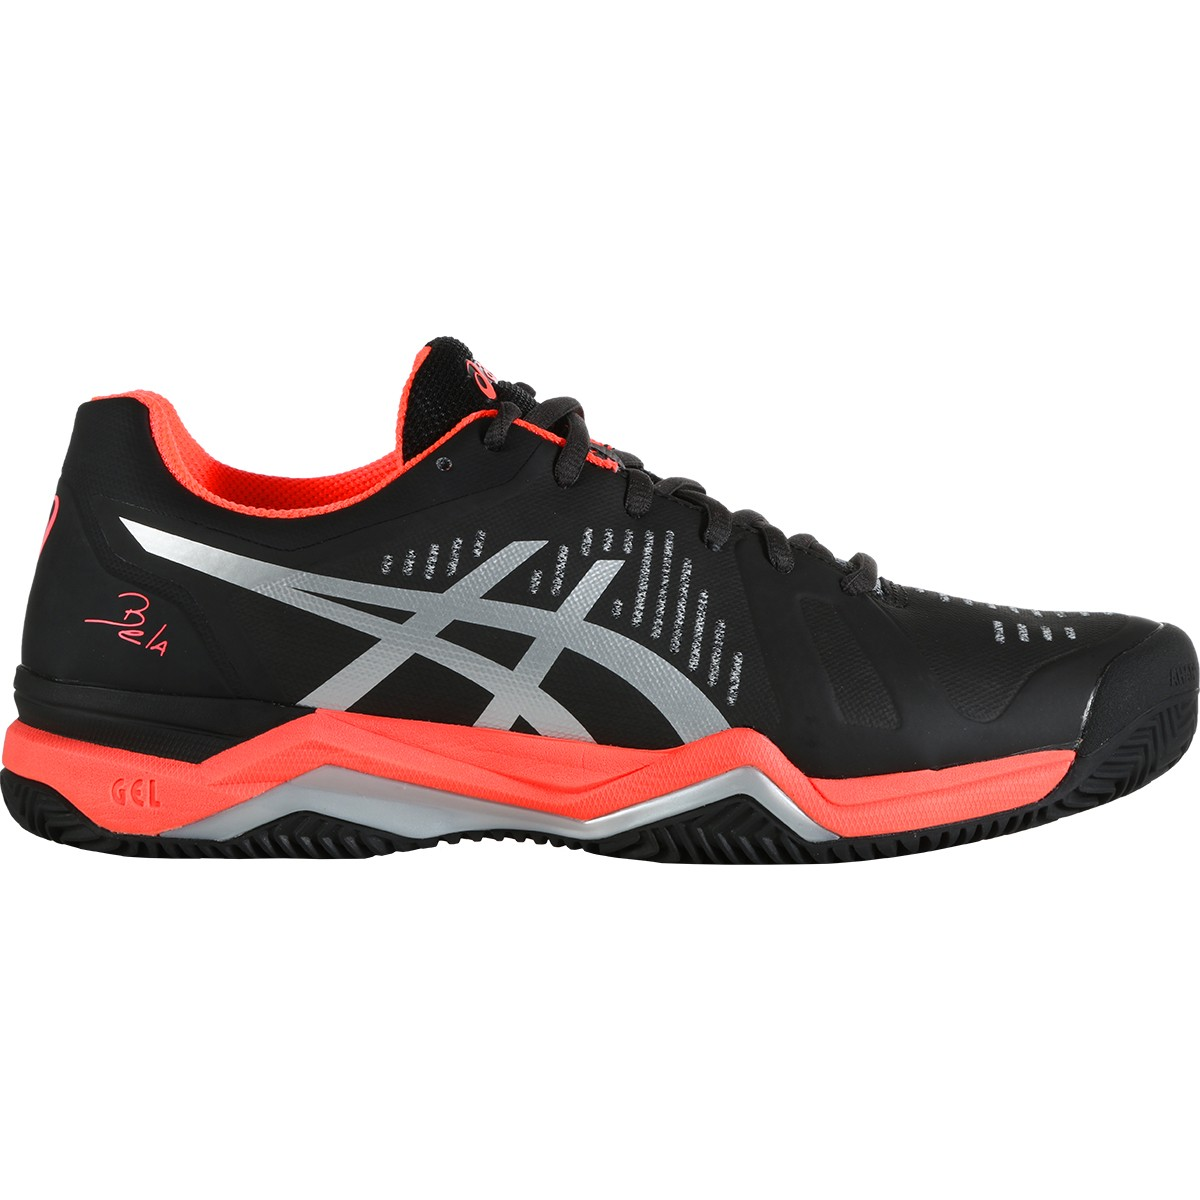 pistola apilar dentista  ASICS GEL BELA 6 SG CLAY COURT/PADEL SHOES - ASICS - Men's - Shoes ...